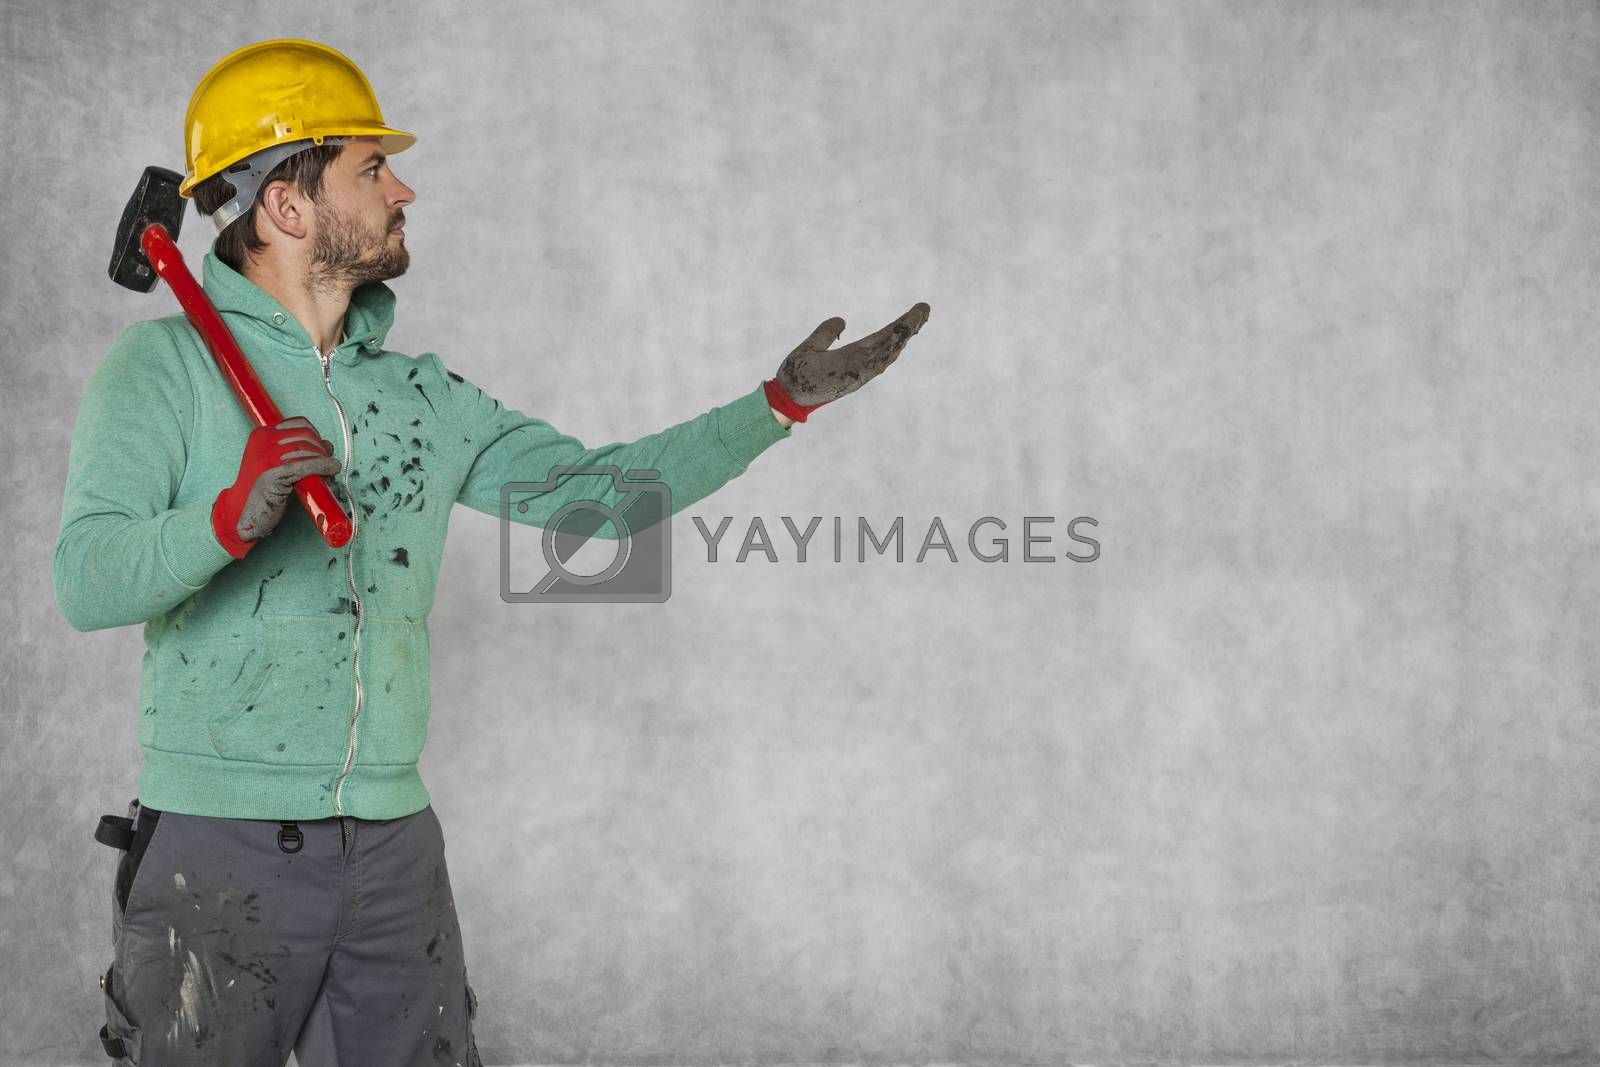 The worker pulls out his hand, copy space